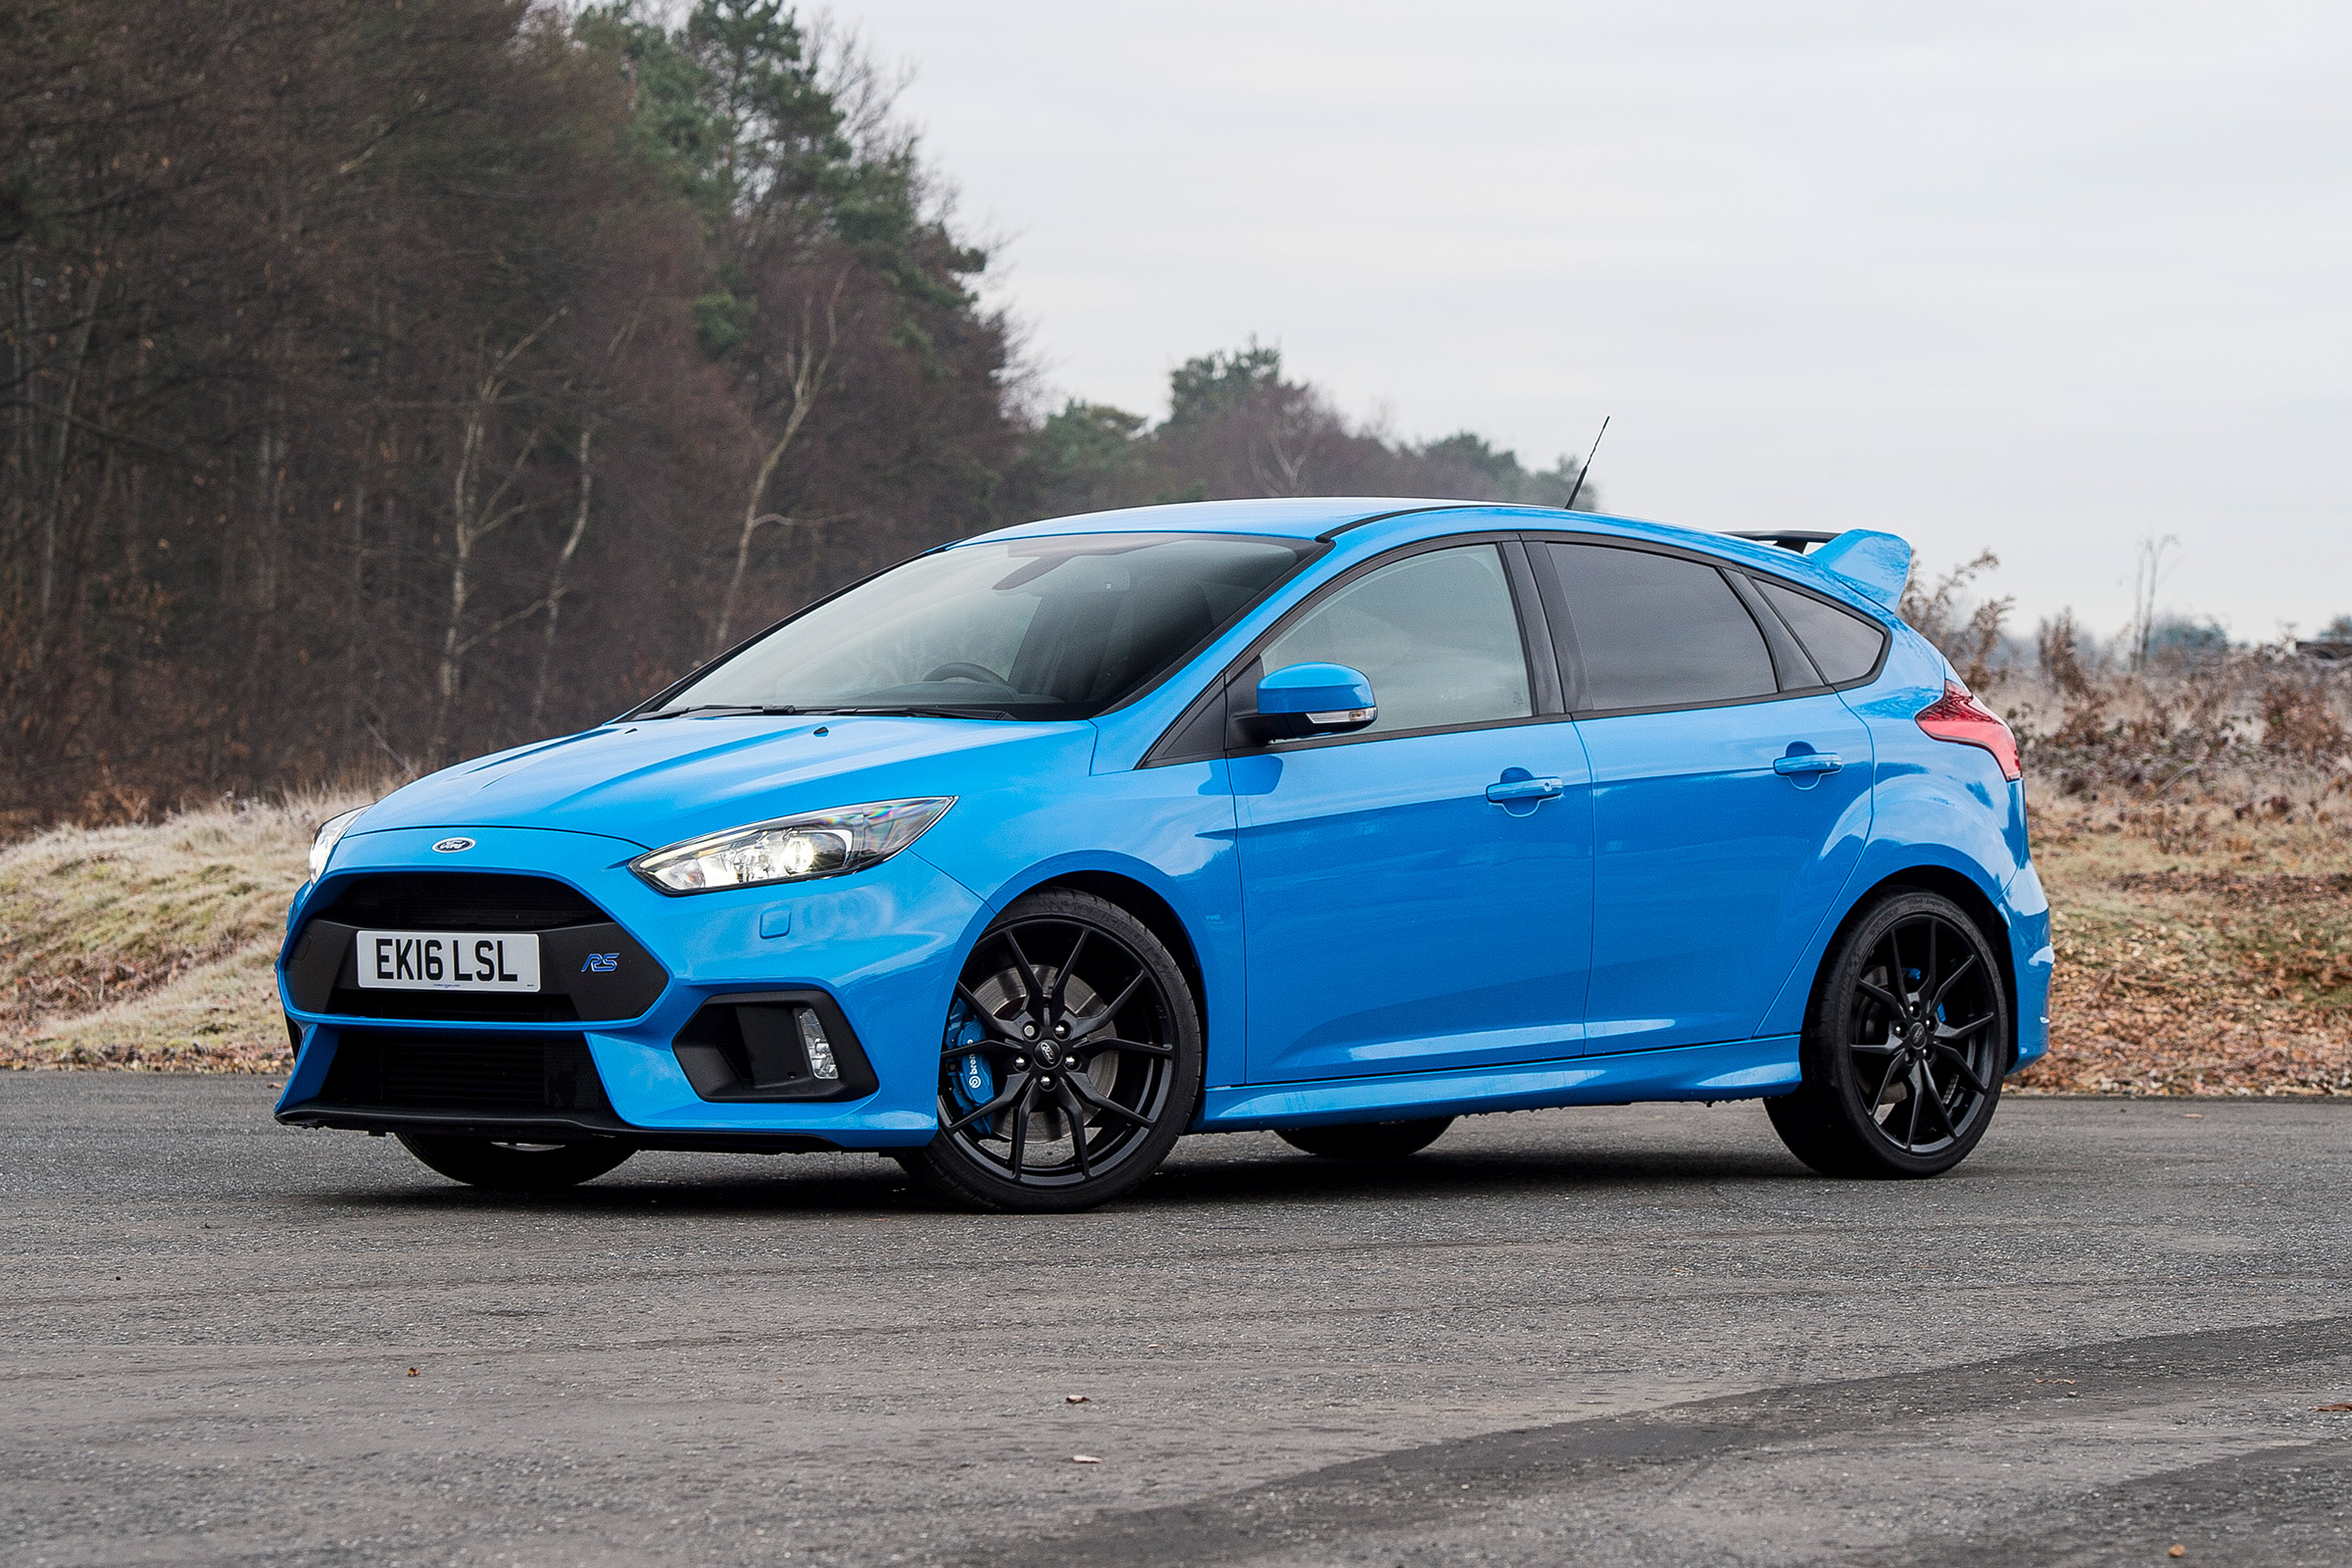 2017 ford focus rs cars exclusive videos and photos updates. Black Bedroom Furniture Sets. Home Design Ideas